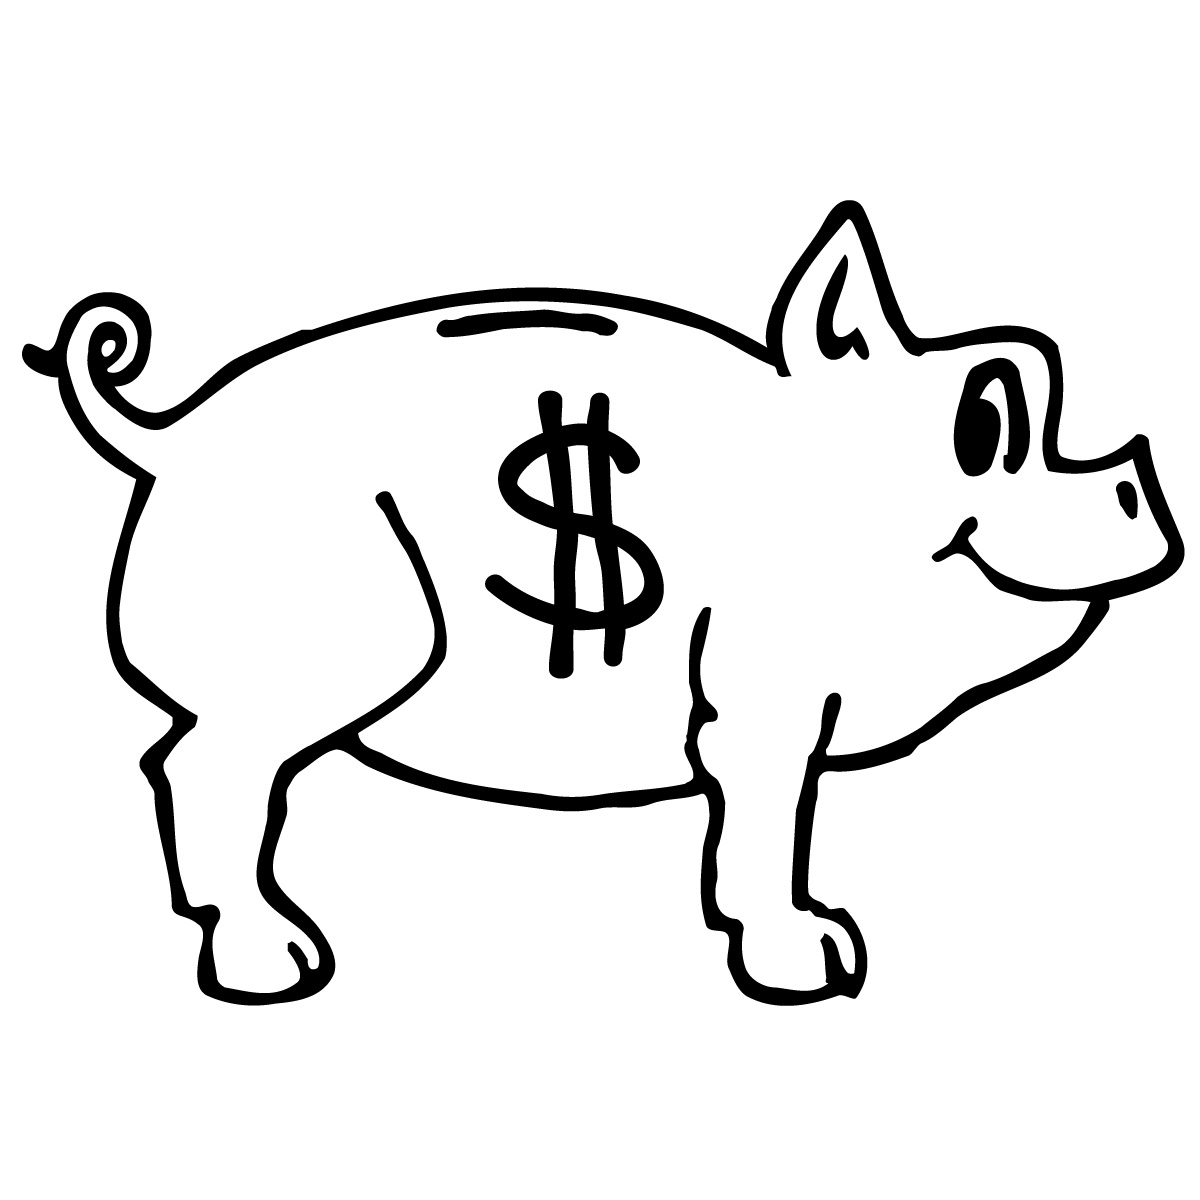 Free piggy bank clipart black and white graphic library Piggy Bank Clipart Black And White | Clipart Panda - Free Clipart ... graphic library